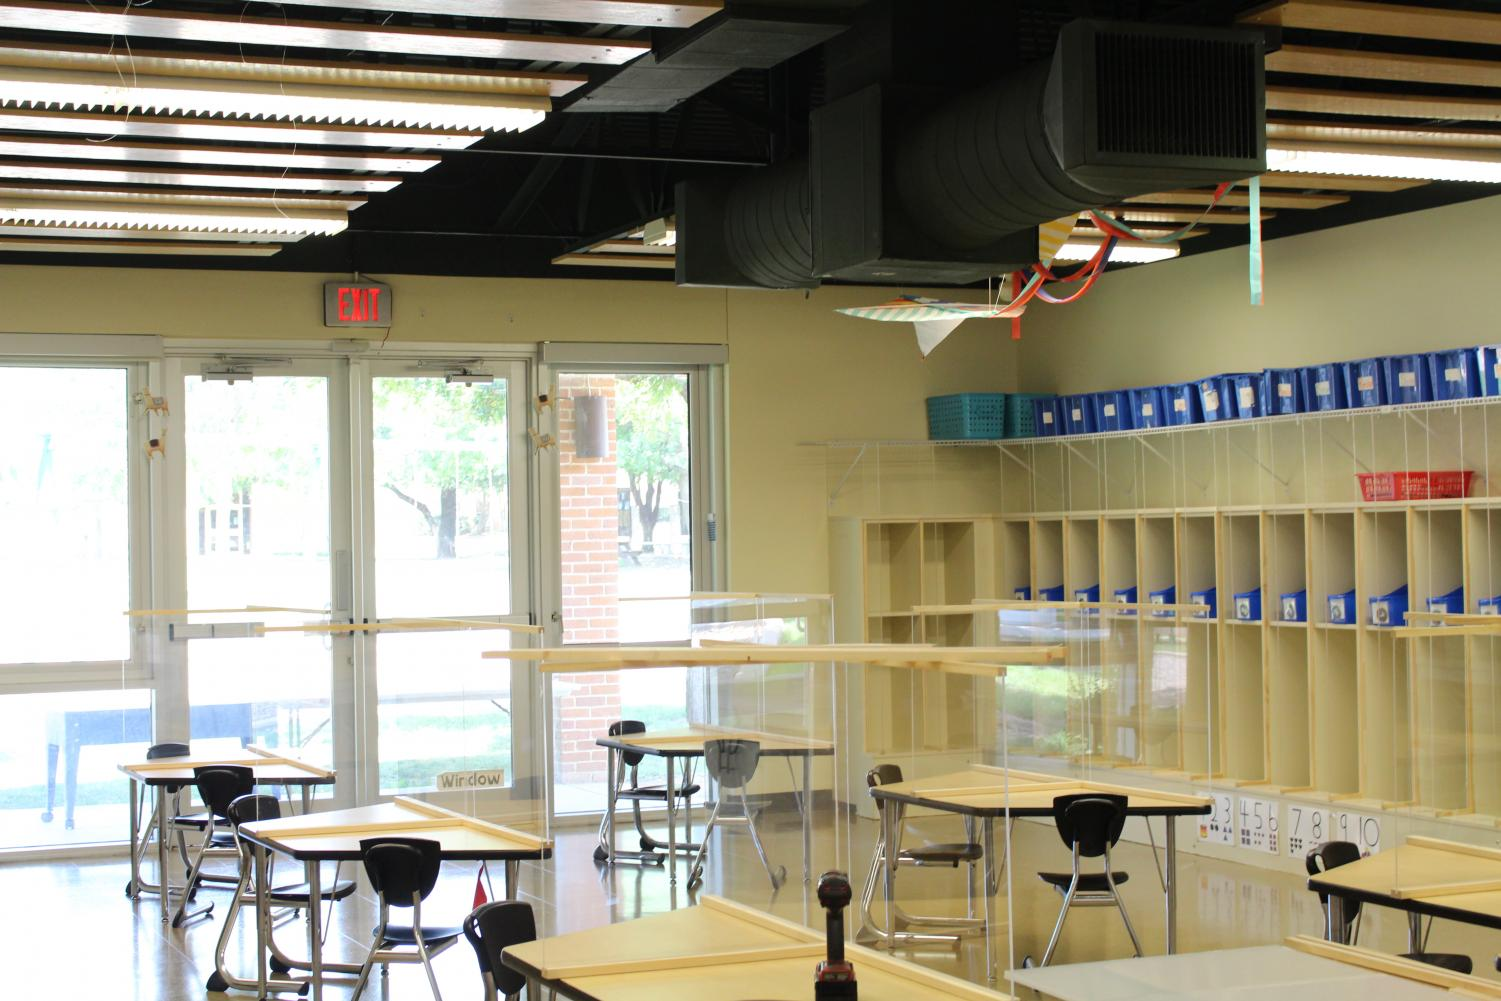 A classroom in the preschool has plexiglass barriers on each desk.